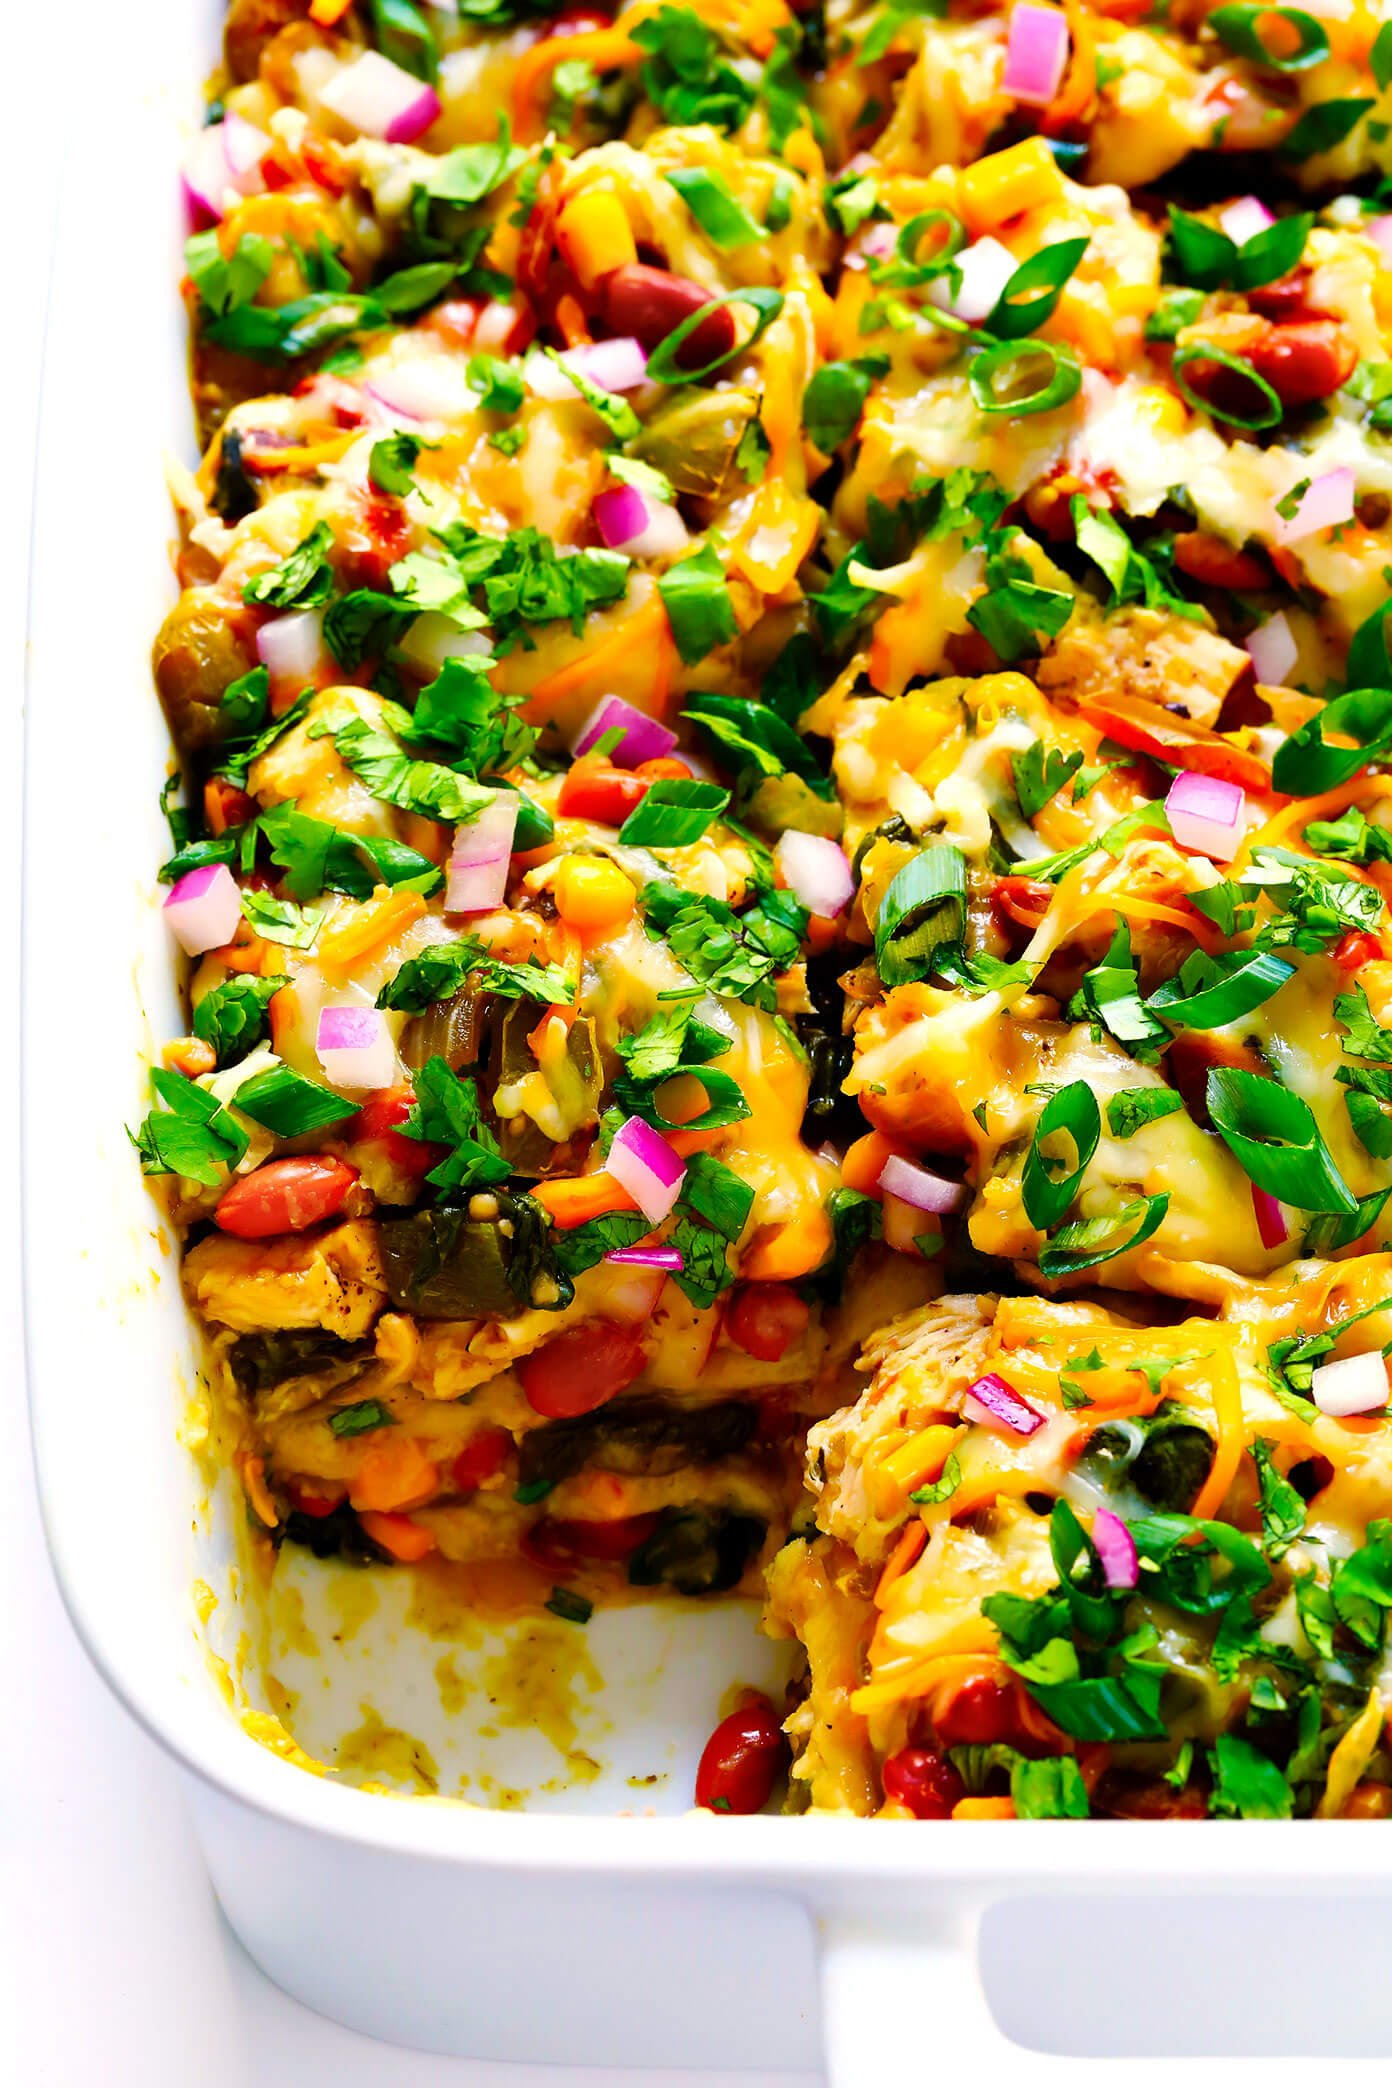 Verde Chicken Enchilada Casserole Recipe with Green Enchilada Sauce